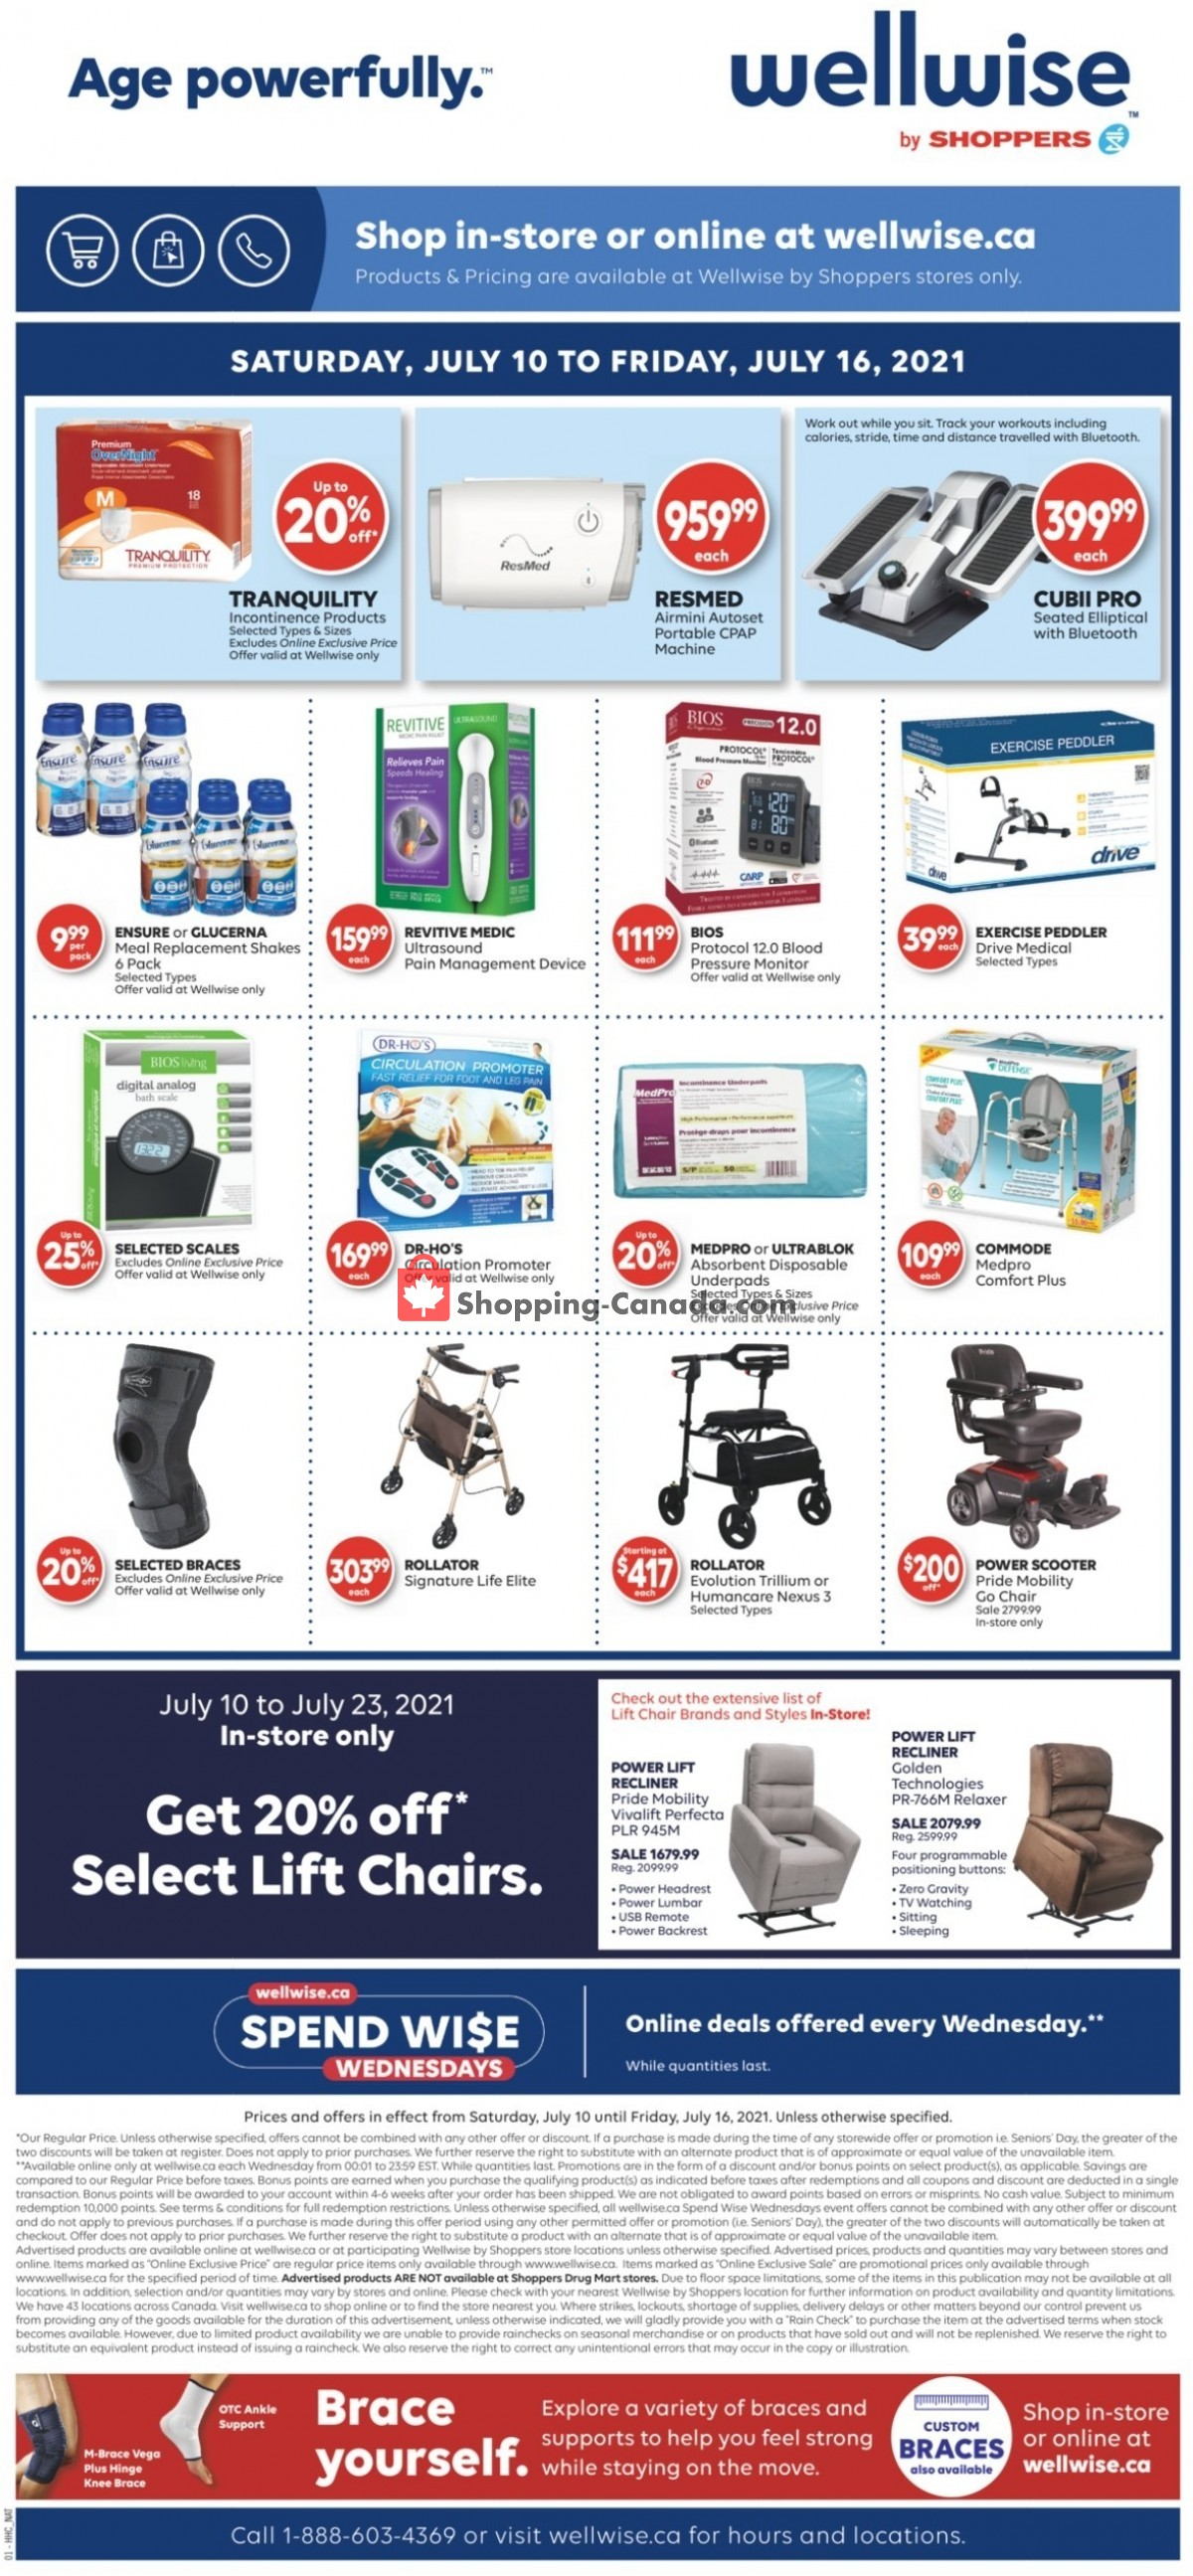 Flyer WellWise by Shoppers Drug Mart Canada - from Saturday July 10, 2021 to Friday July 16, 2021